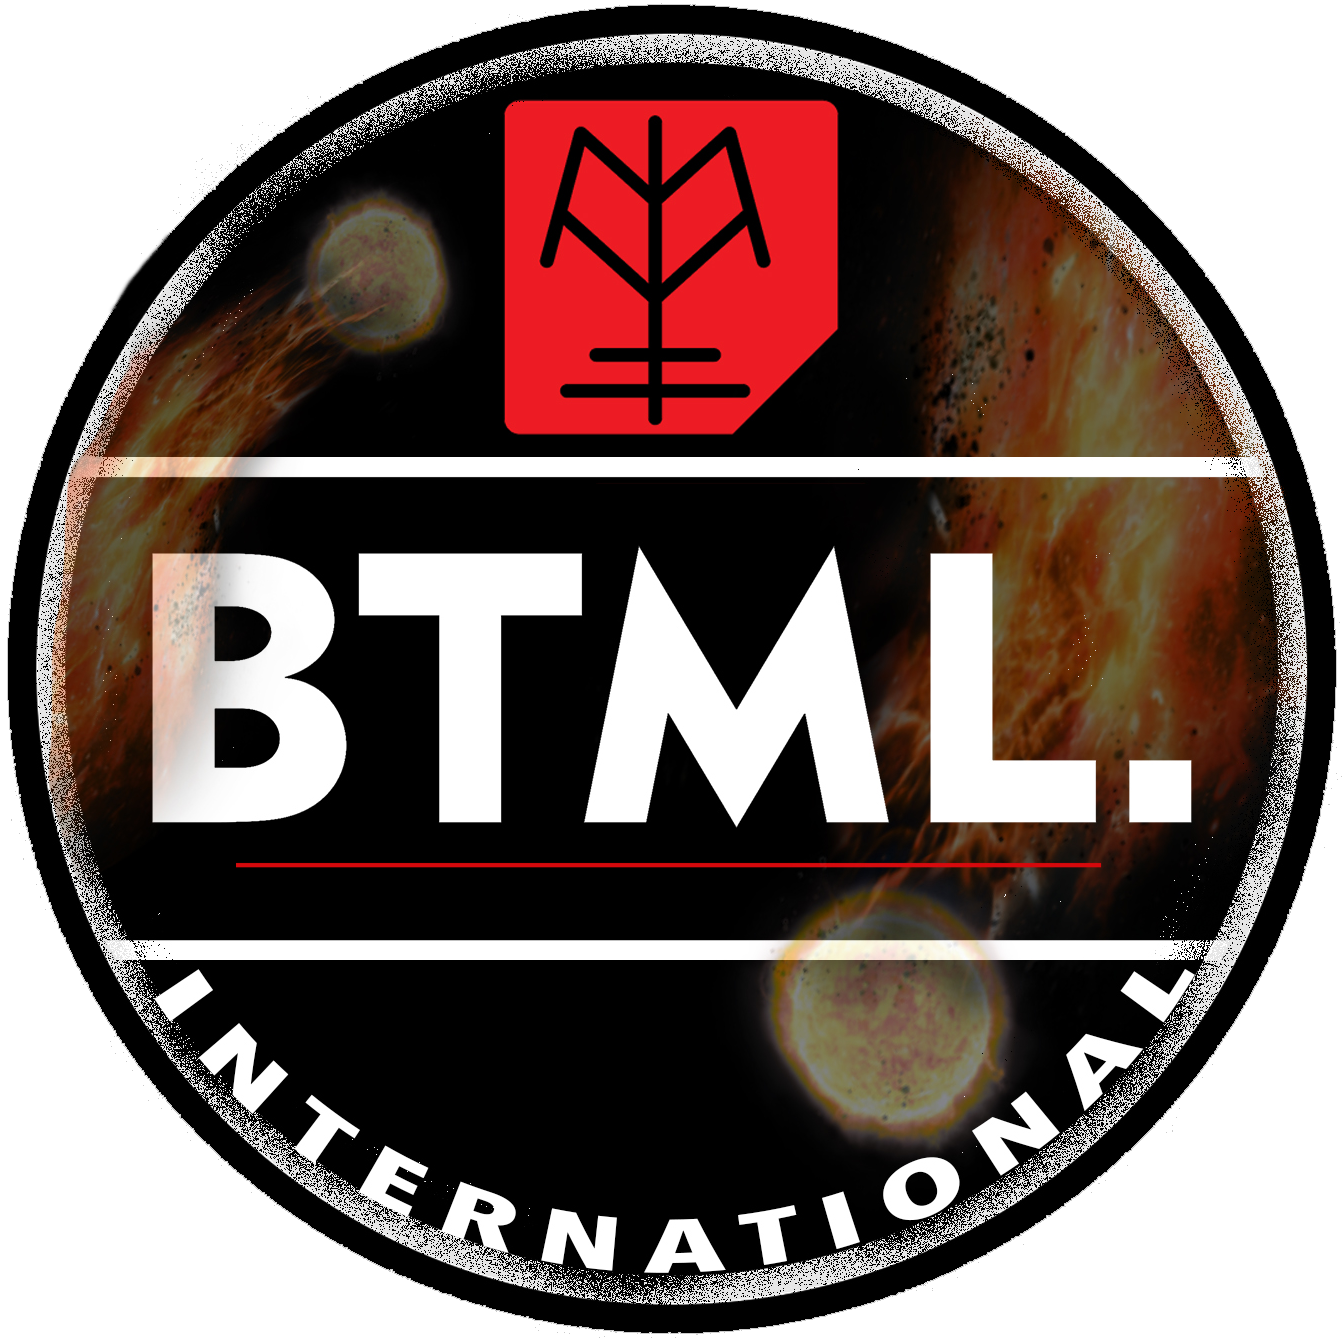 btmlfashion.com